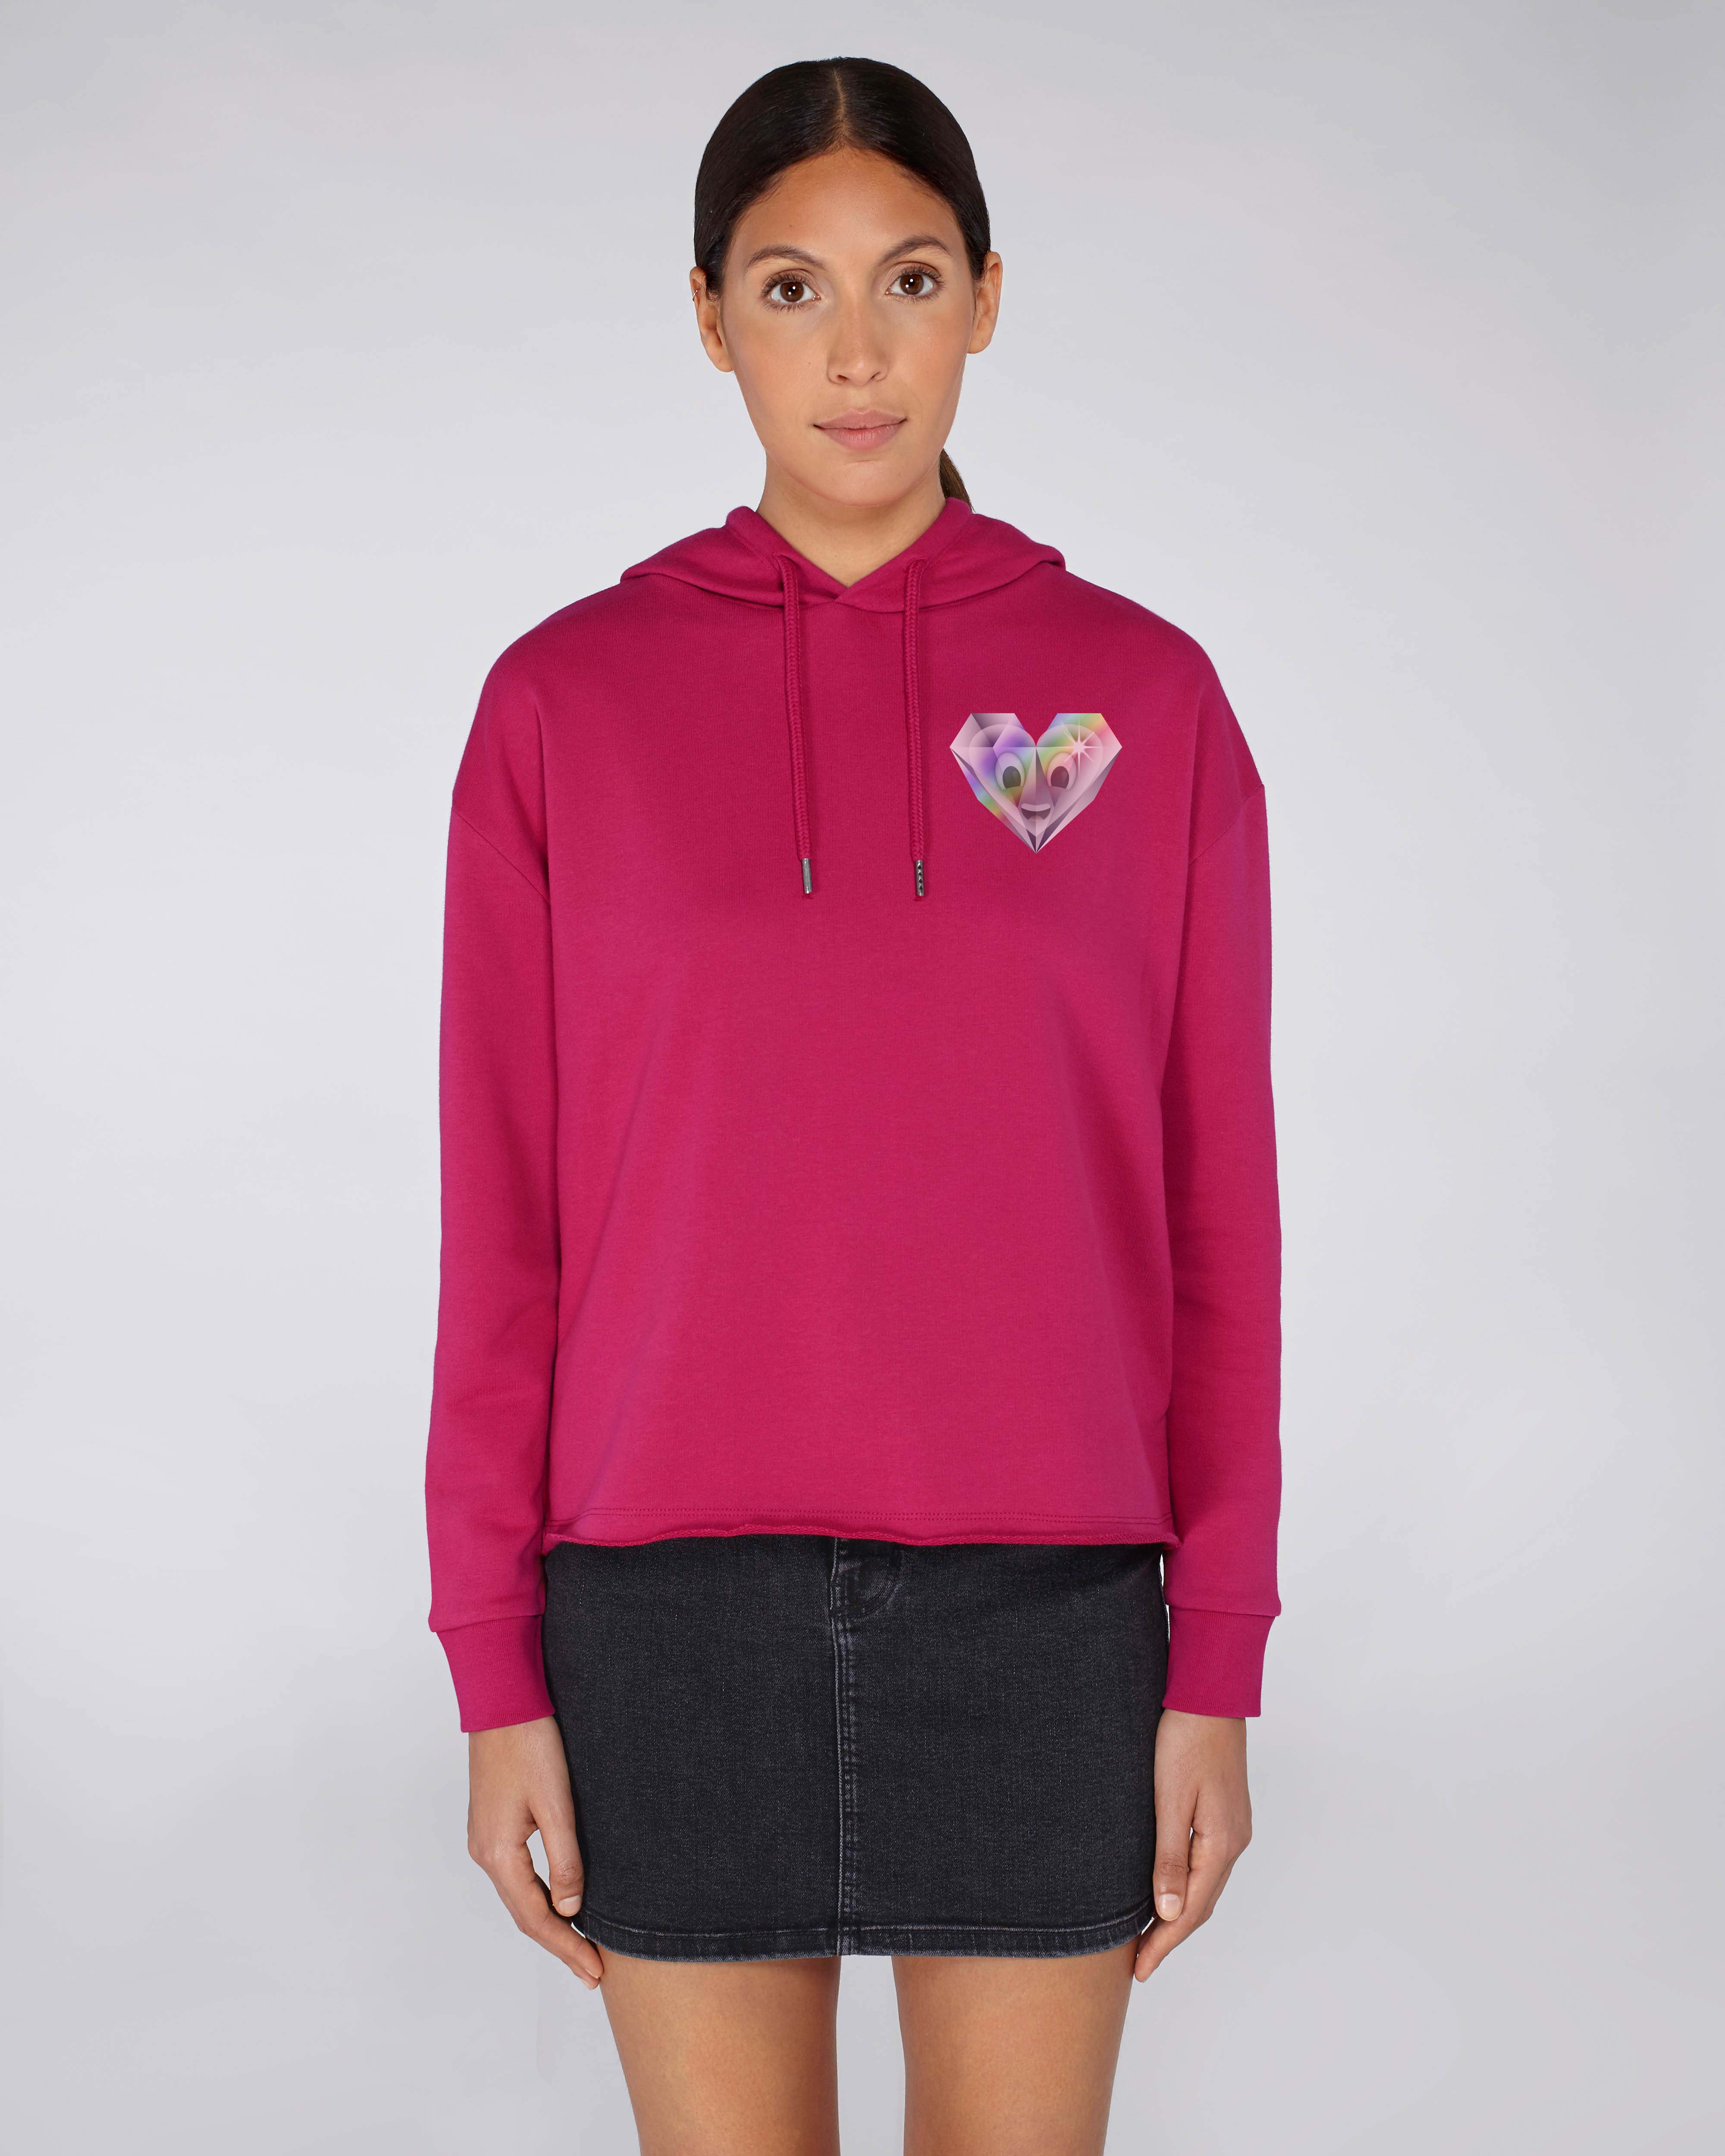 Sweat-Shirt Bio rose Femme - Diamond sweat